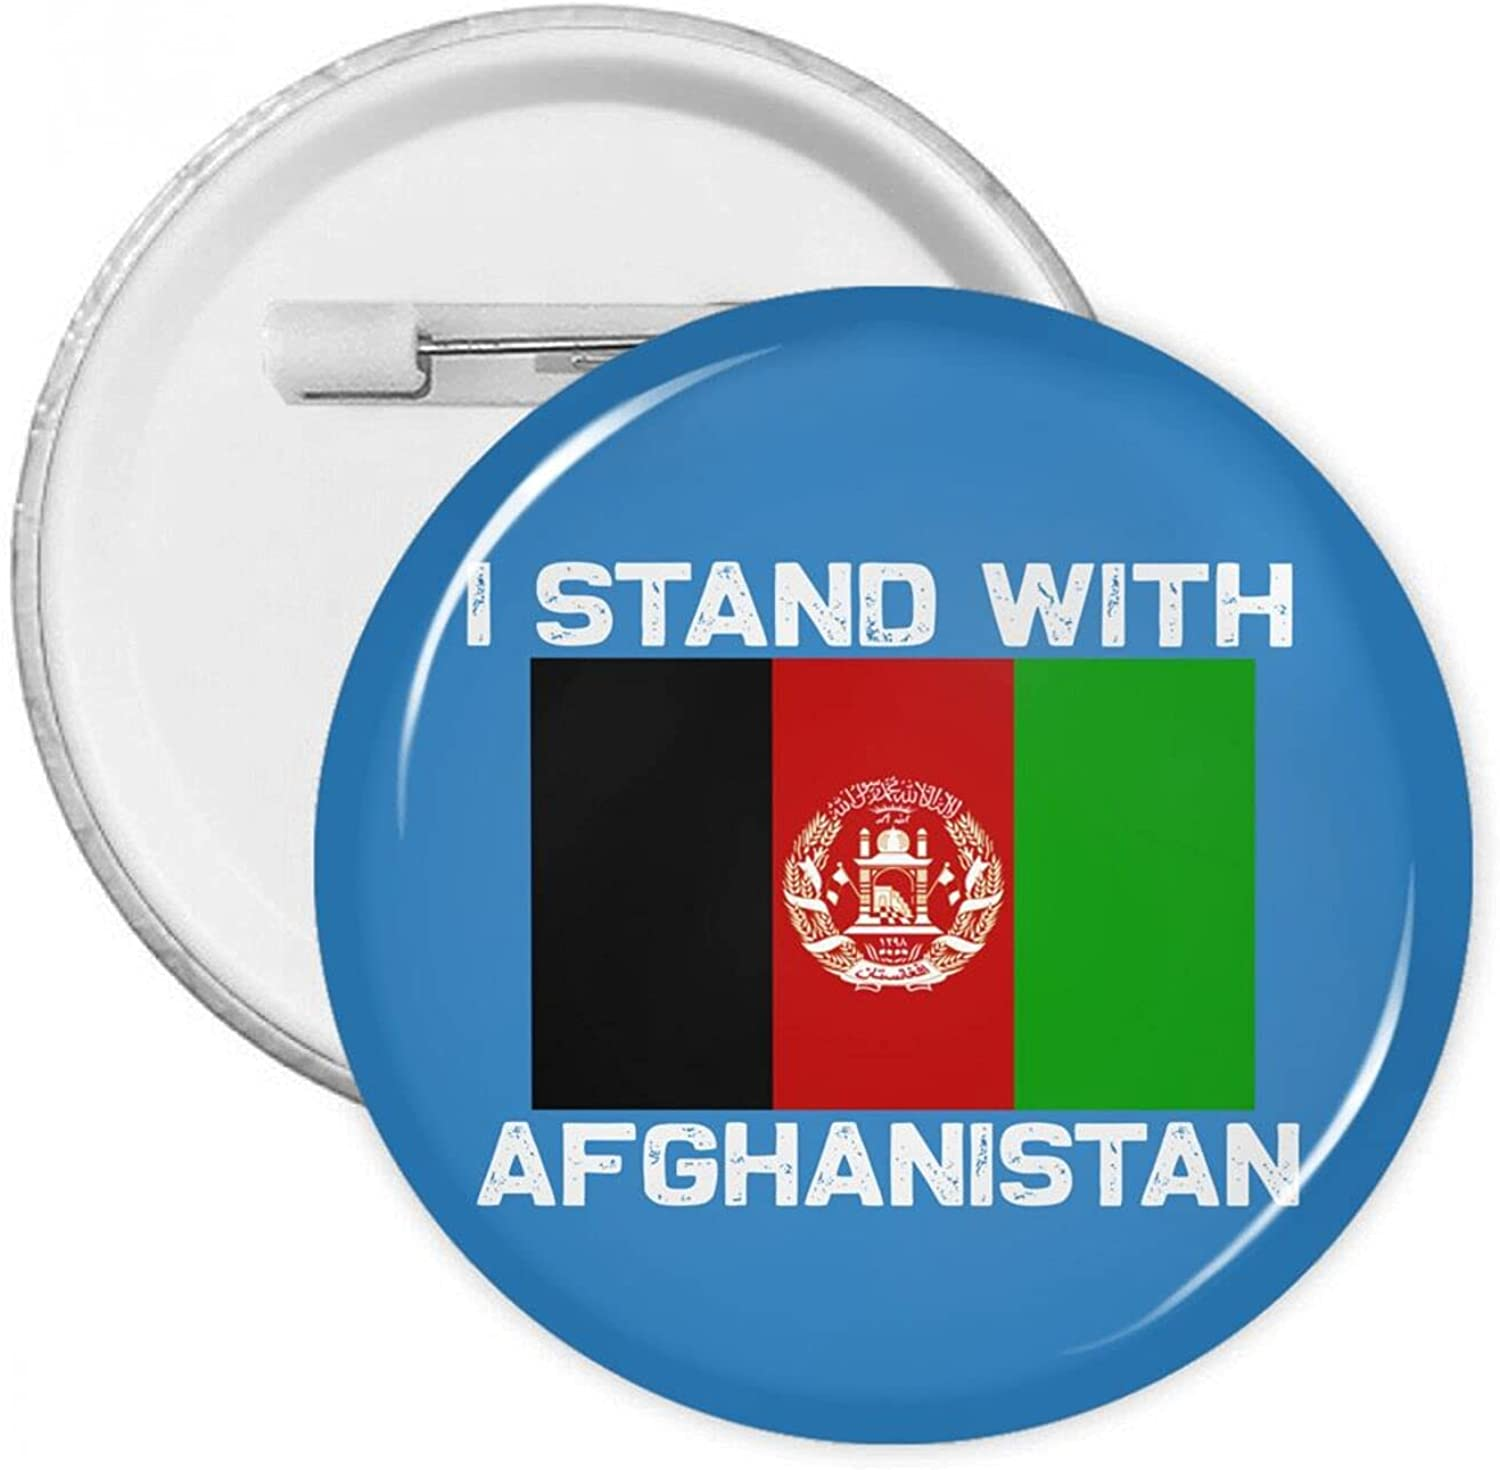 I Fresno Mall Stand With Afghanistan Round Pins Button Charlotte Mall Badges